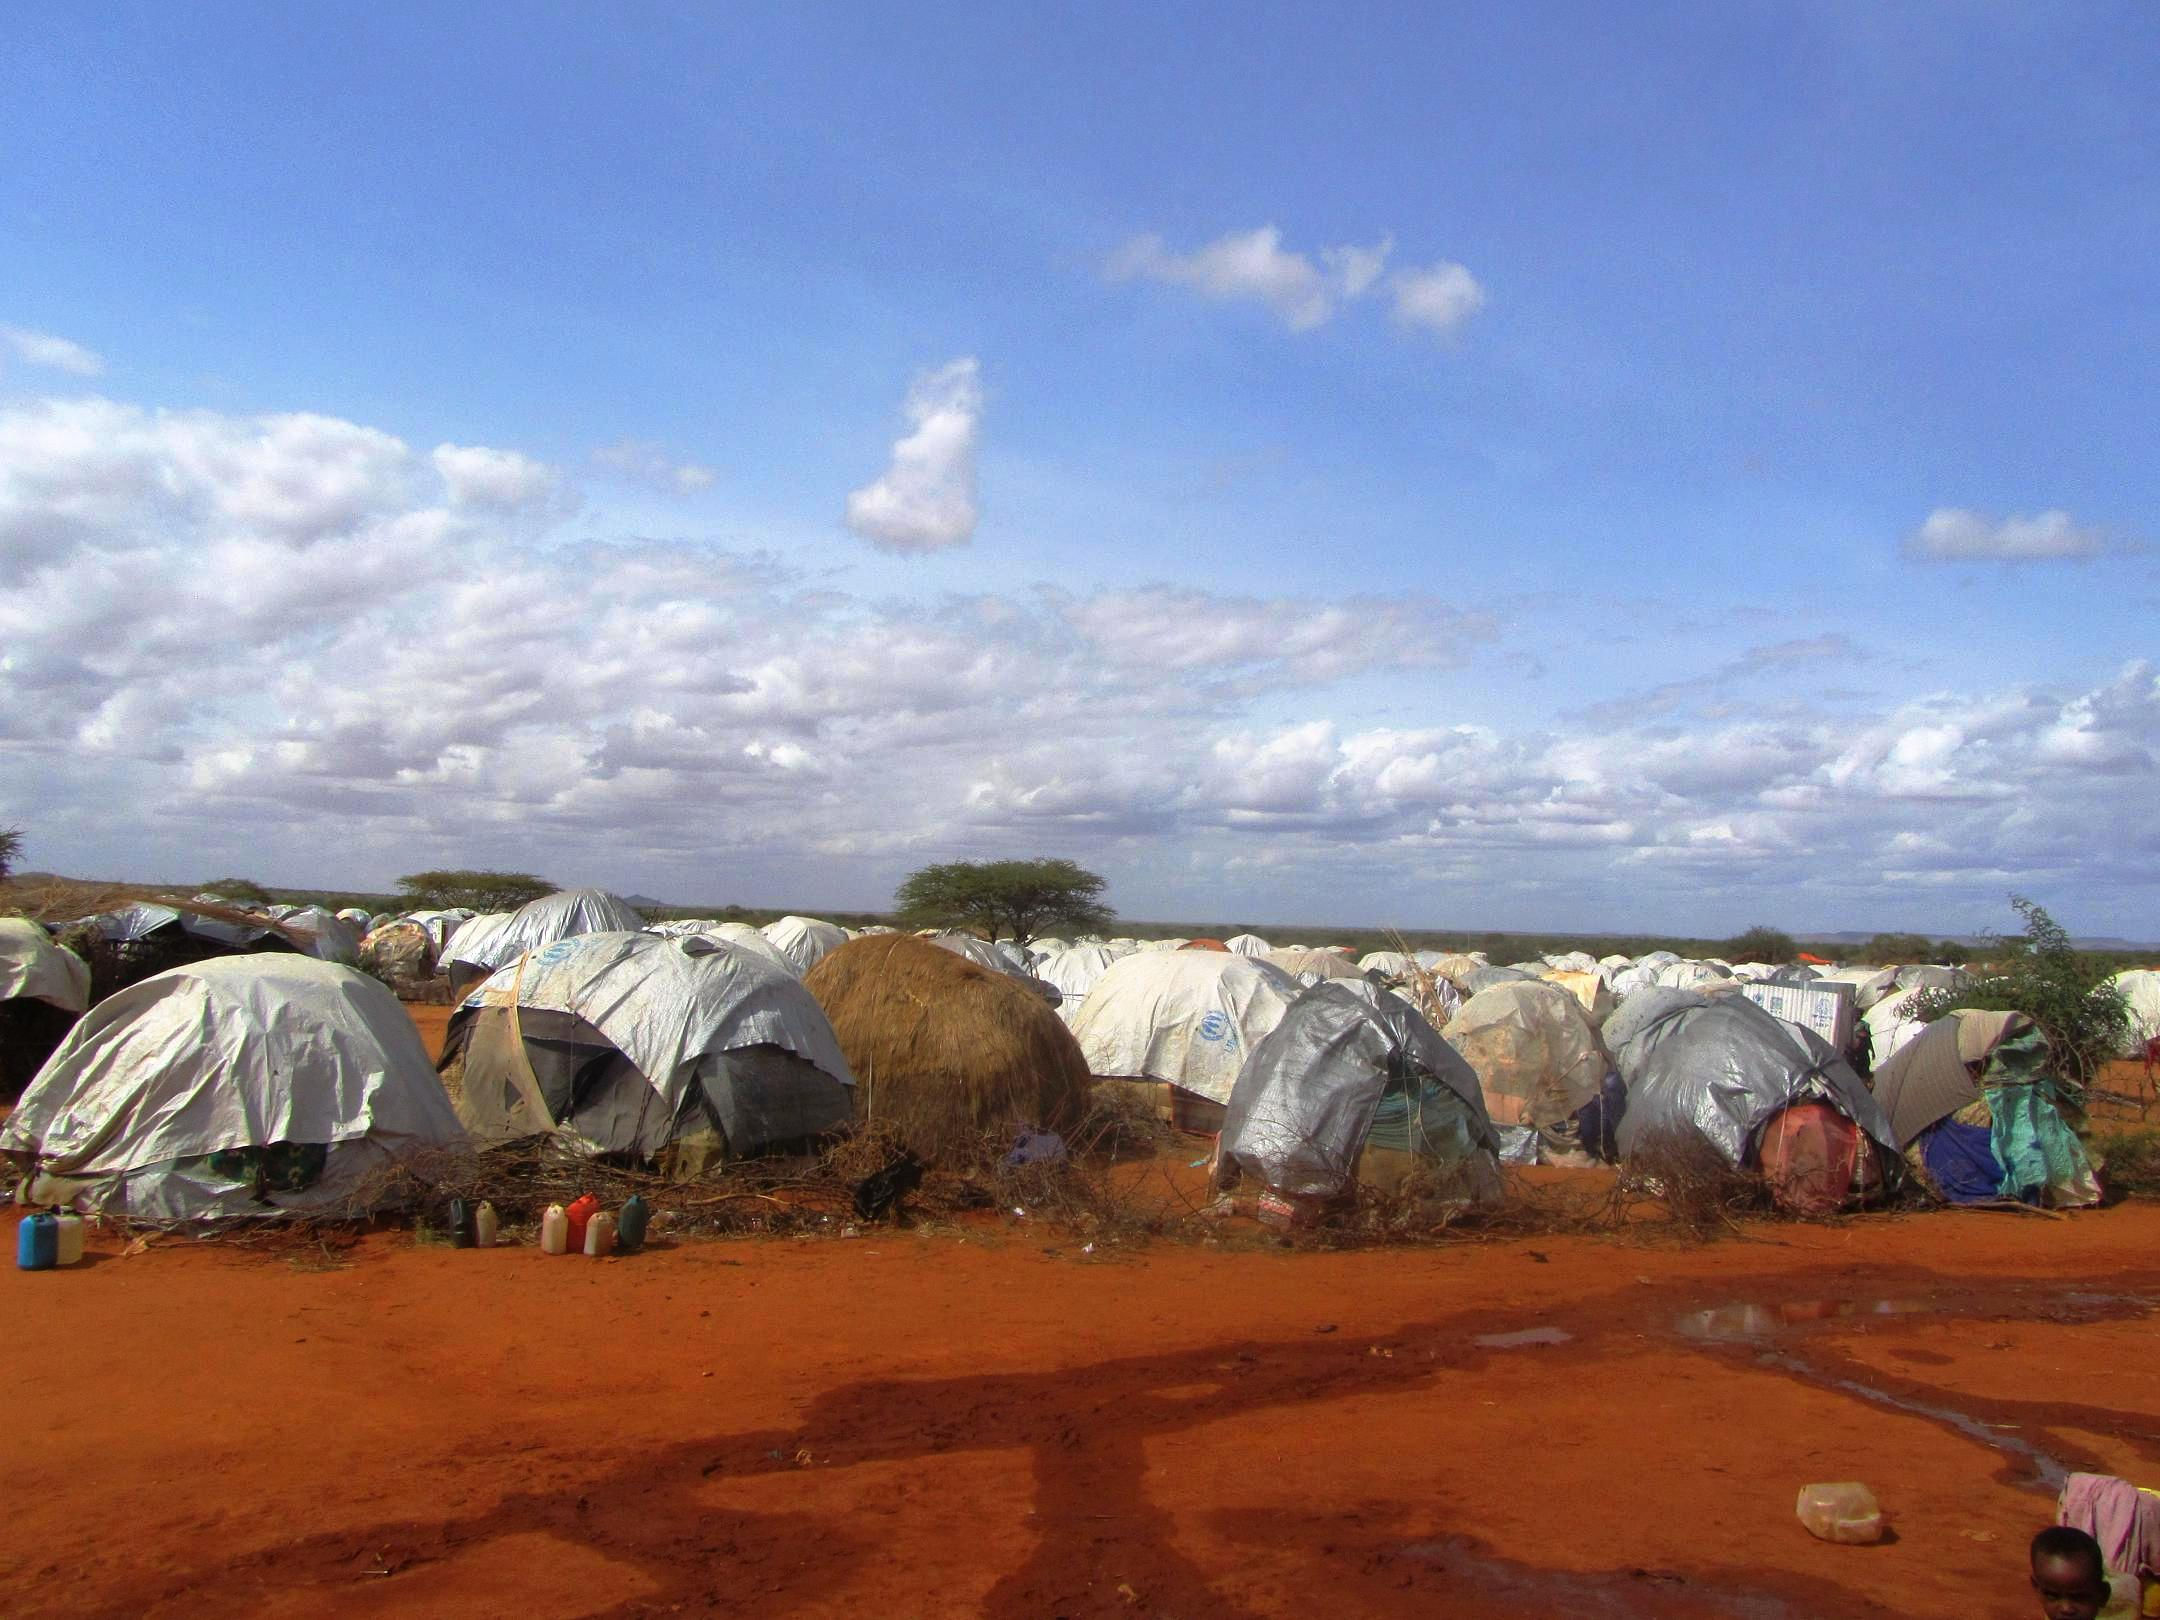 IDP settlement in Gedo, southern Somalia